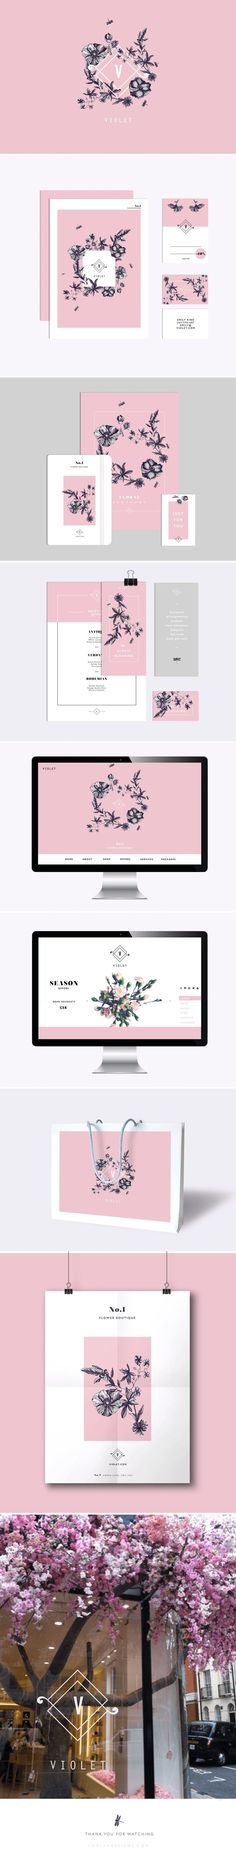 Branding and logo design / hand drawn boho flowers + pink + grey // loolaadesigns.com: http://loolaadesigns.comviolet-branding/?utm_content=bufferd9ea2&utm_medium=social&utm_source=pinterest.com&utm_campaign=buffer